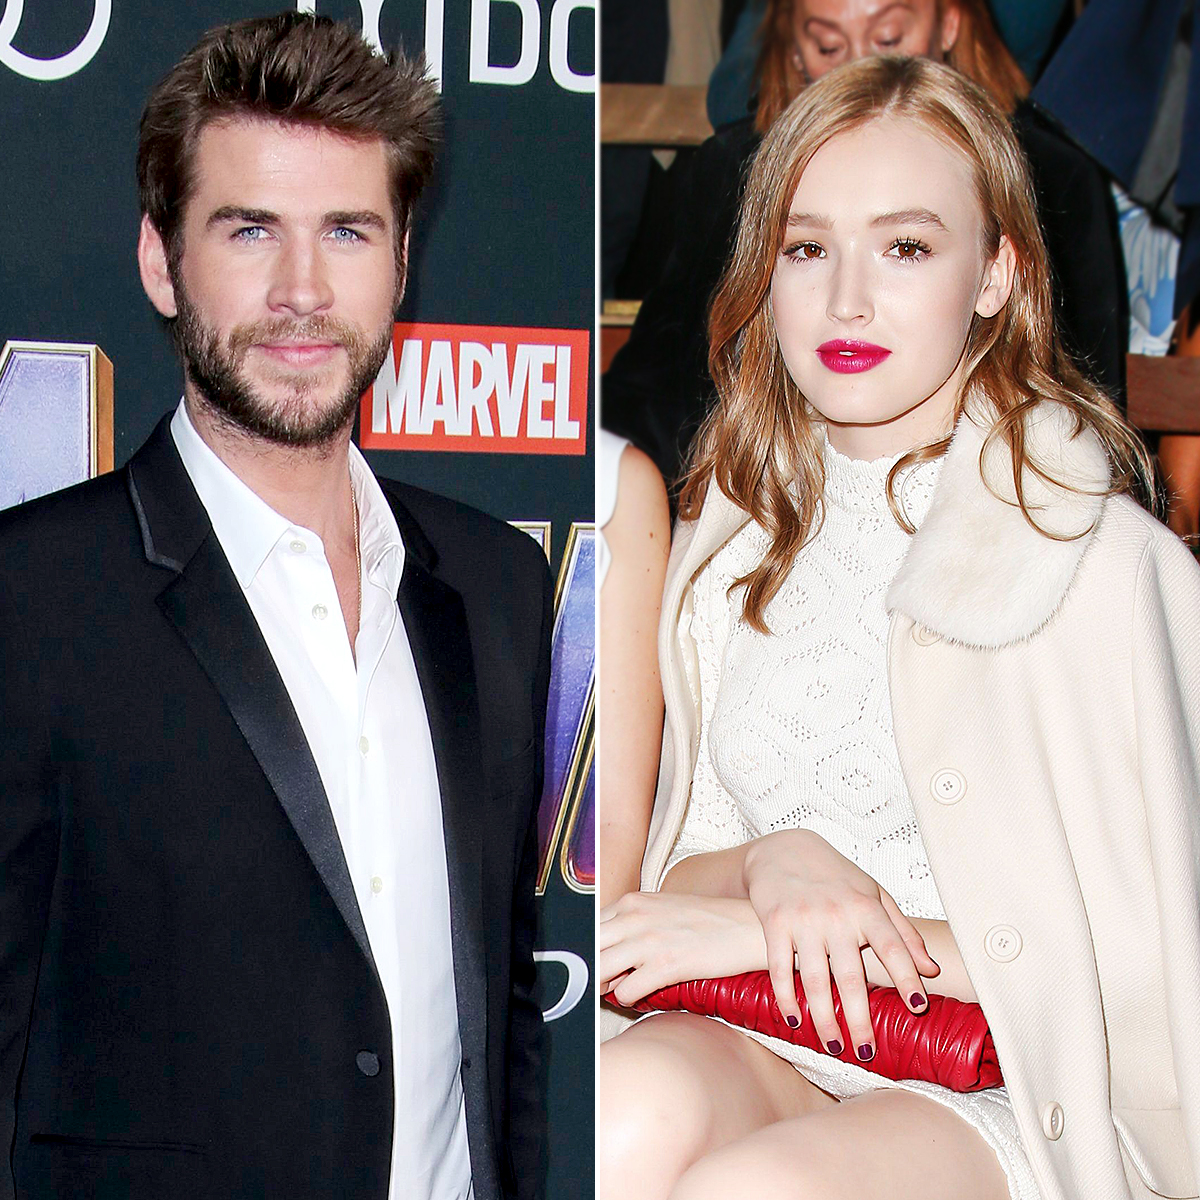 Liam-Hemsworth's-Date-With-Maddison-Brown